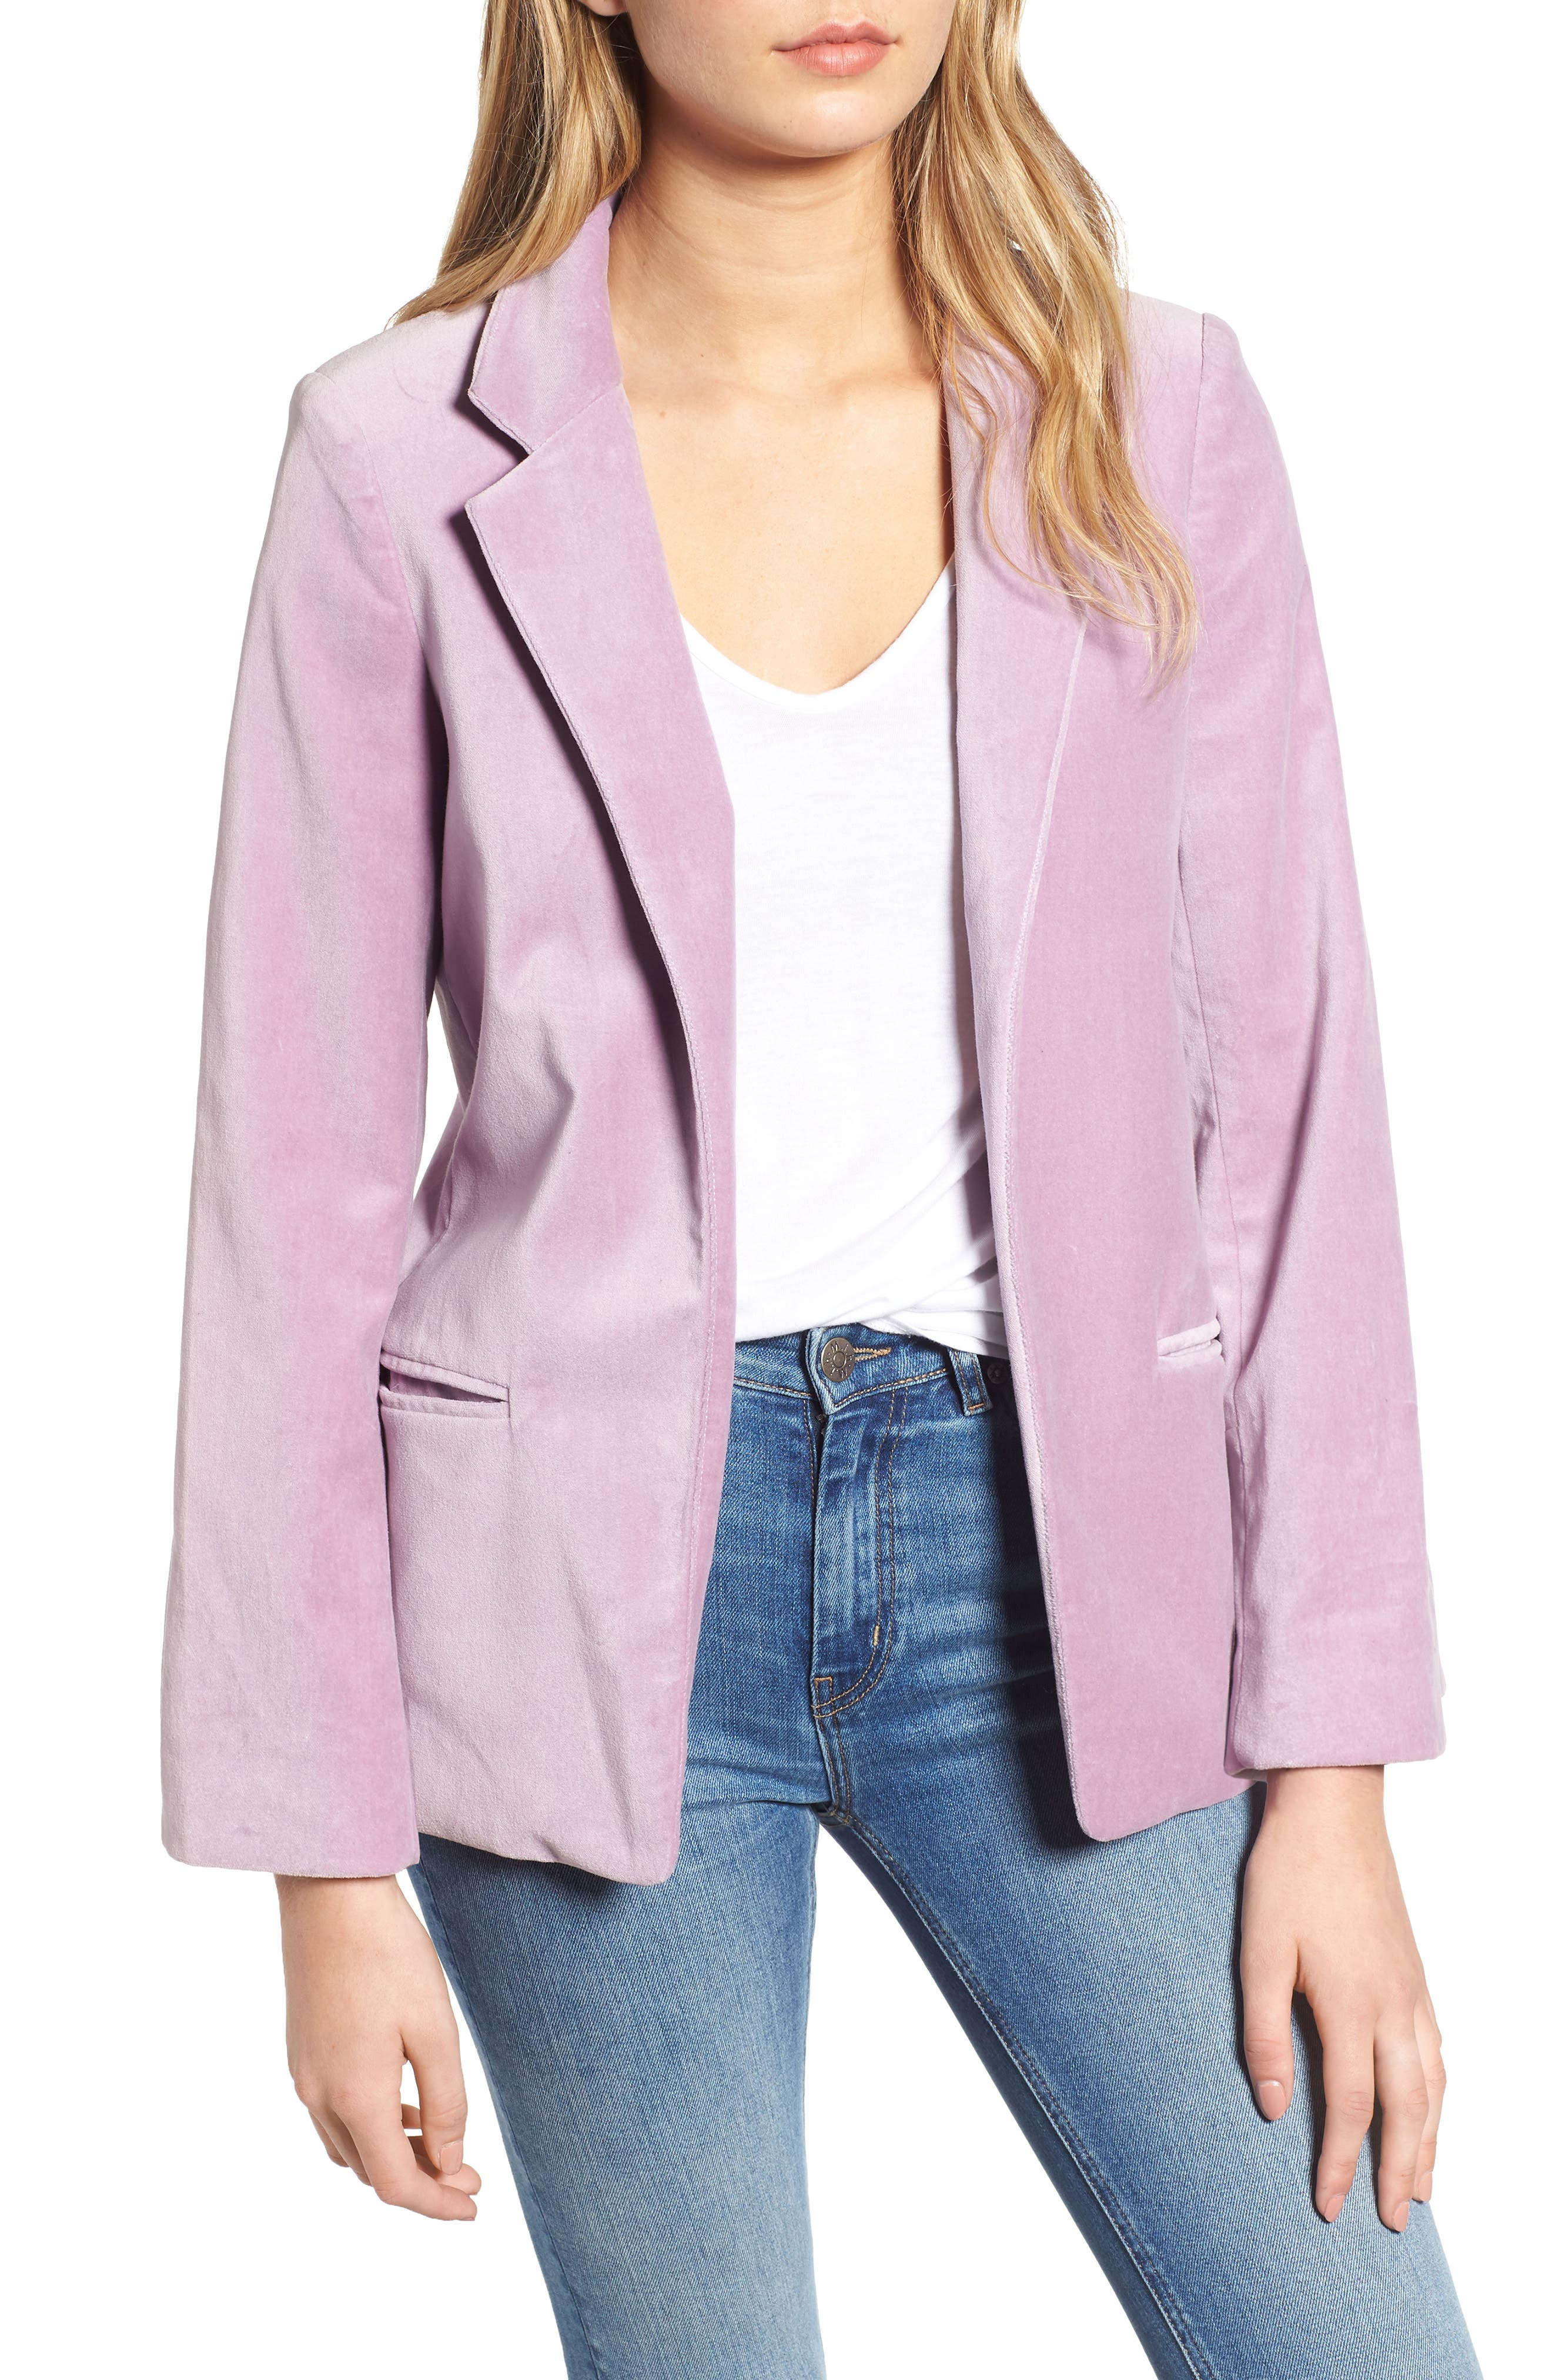 Volly Velours Jacket,                             Main thumbnail 1, color,                             PARME